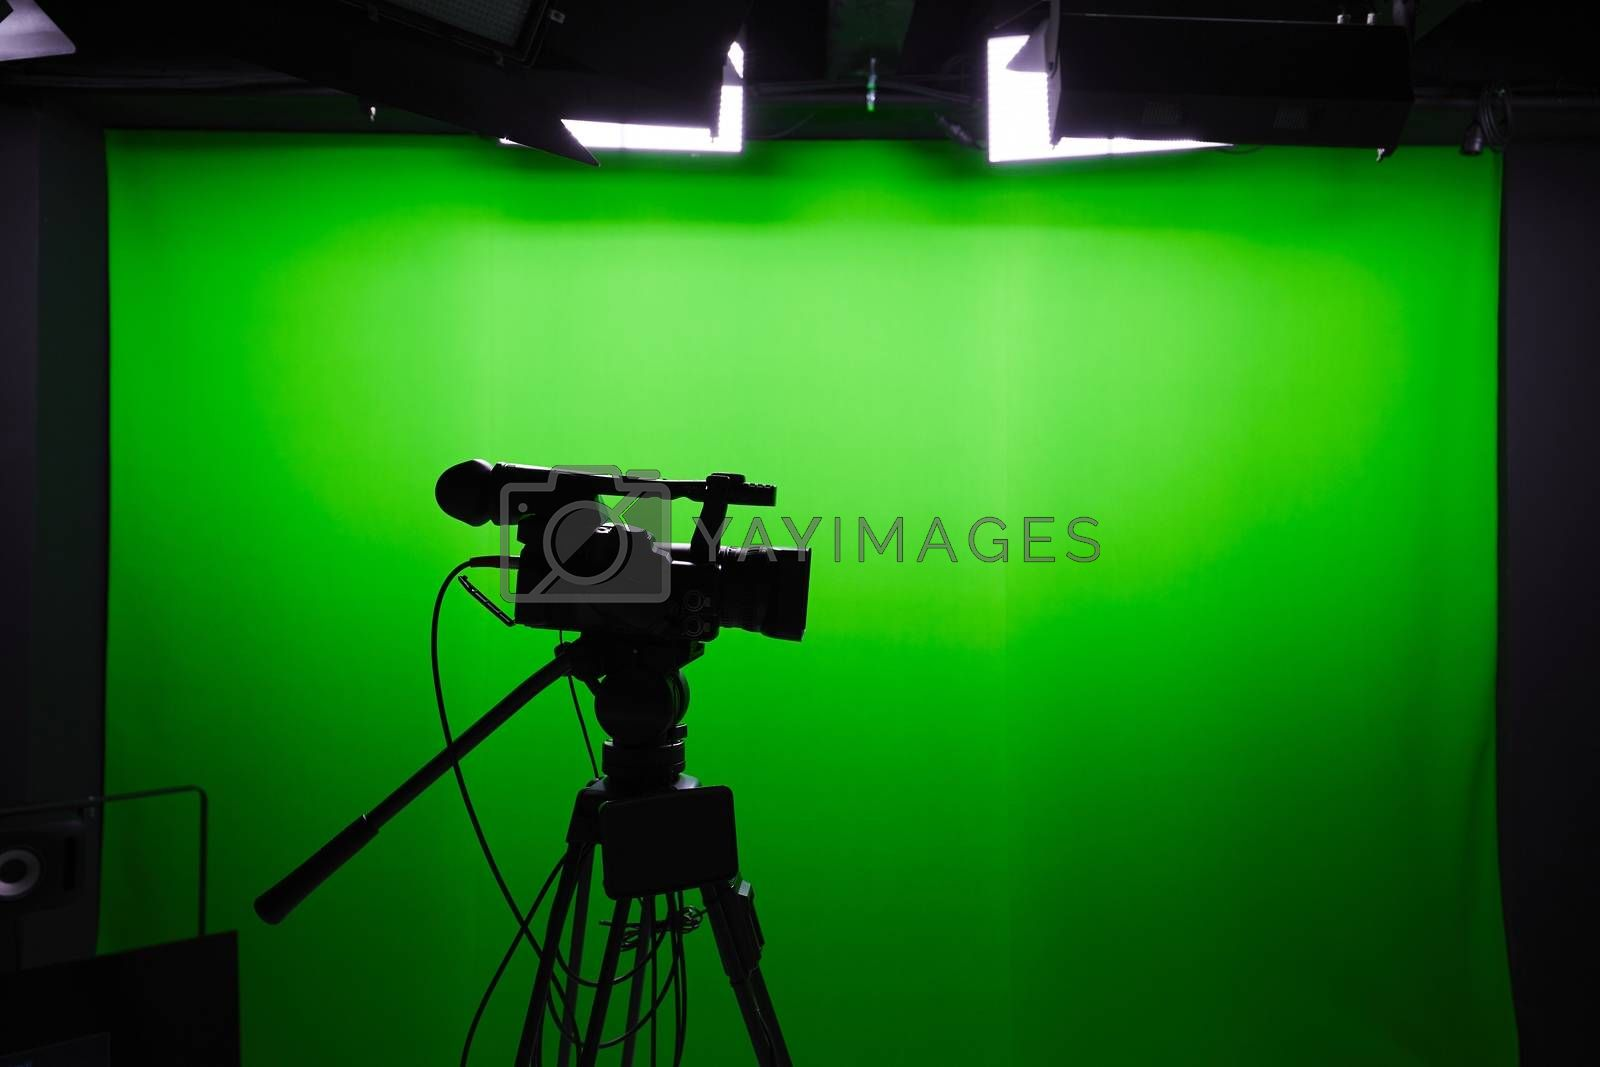 Silhouette of digital video camera in front of the green screen